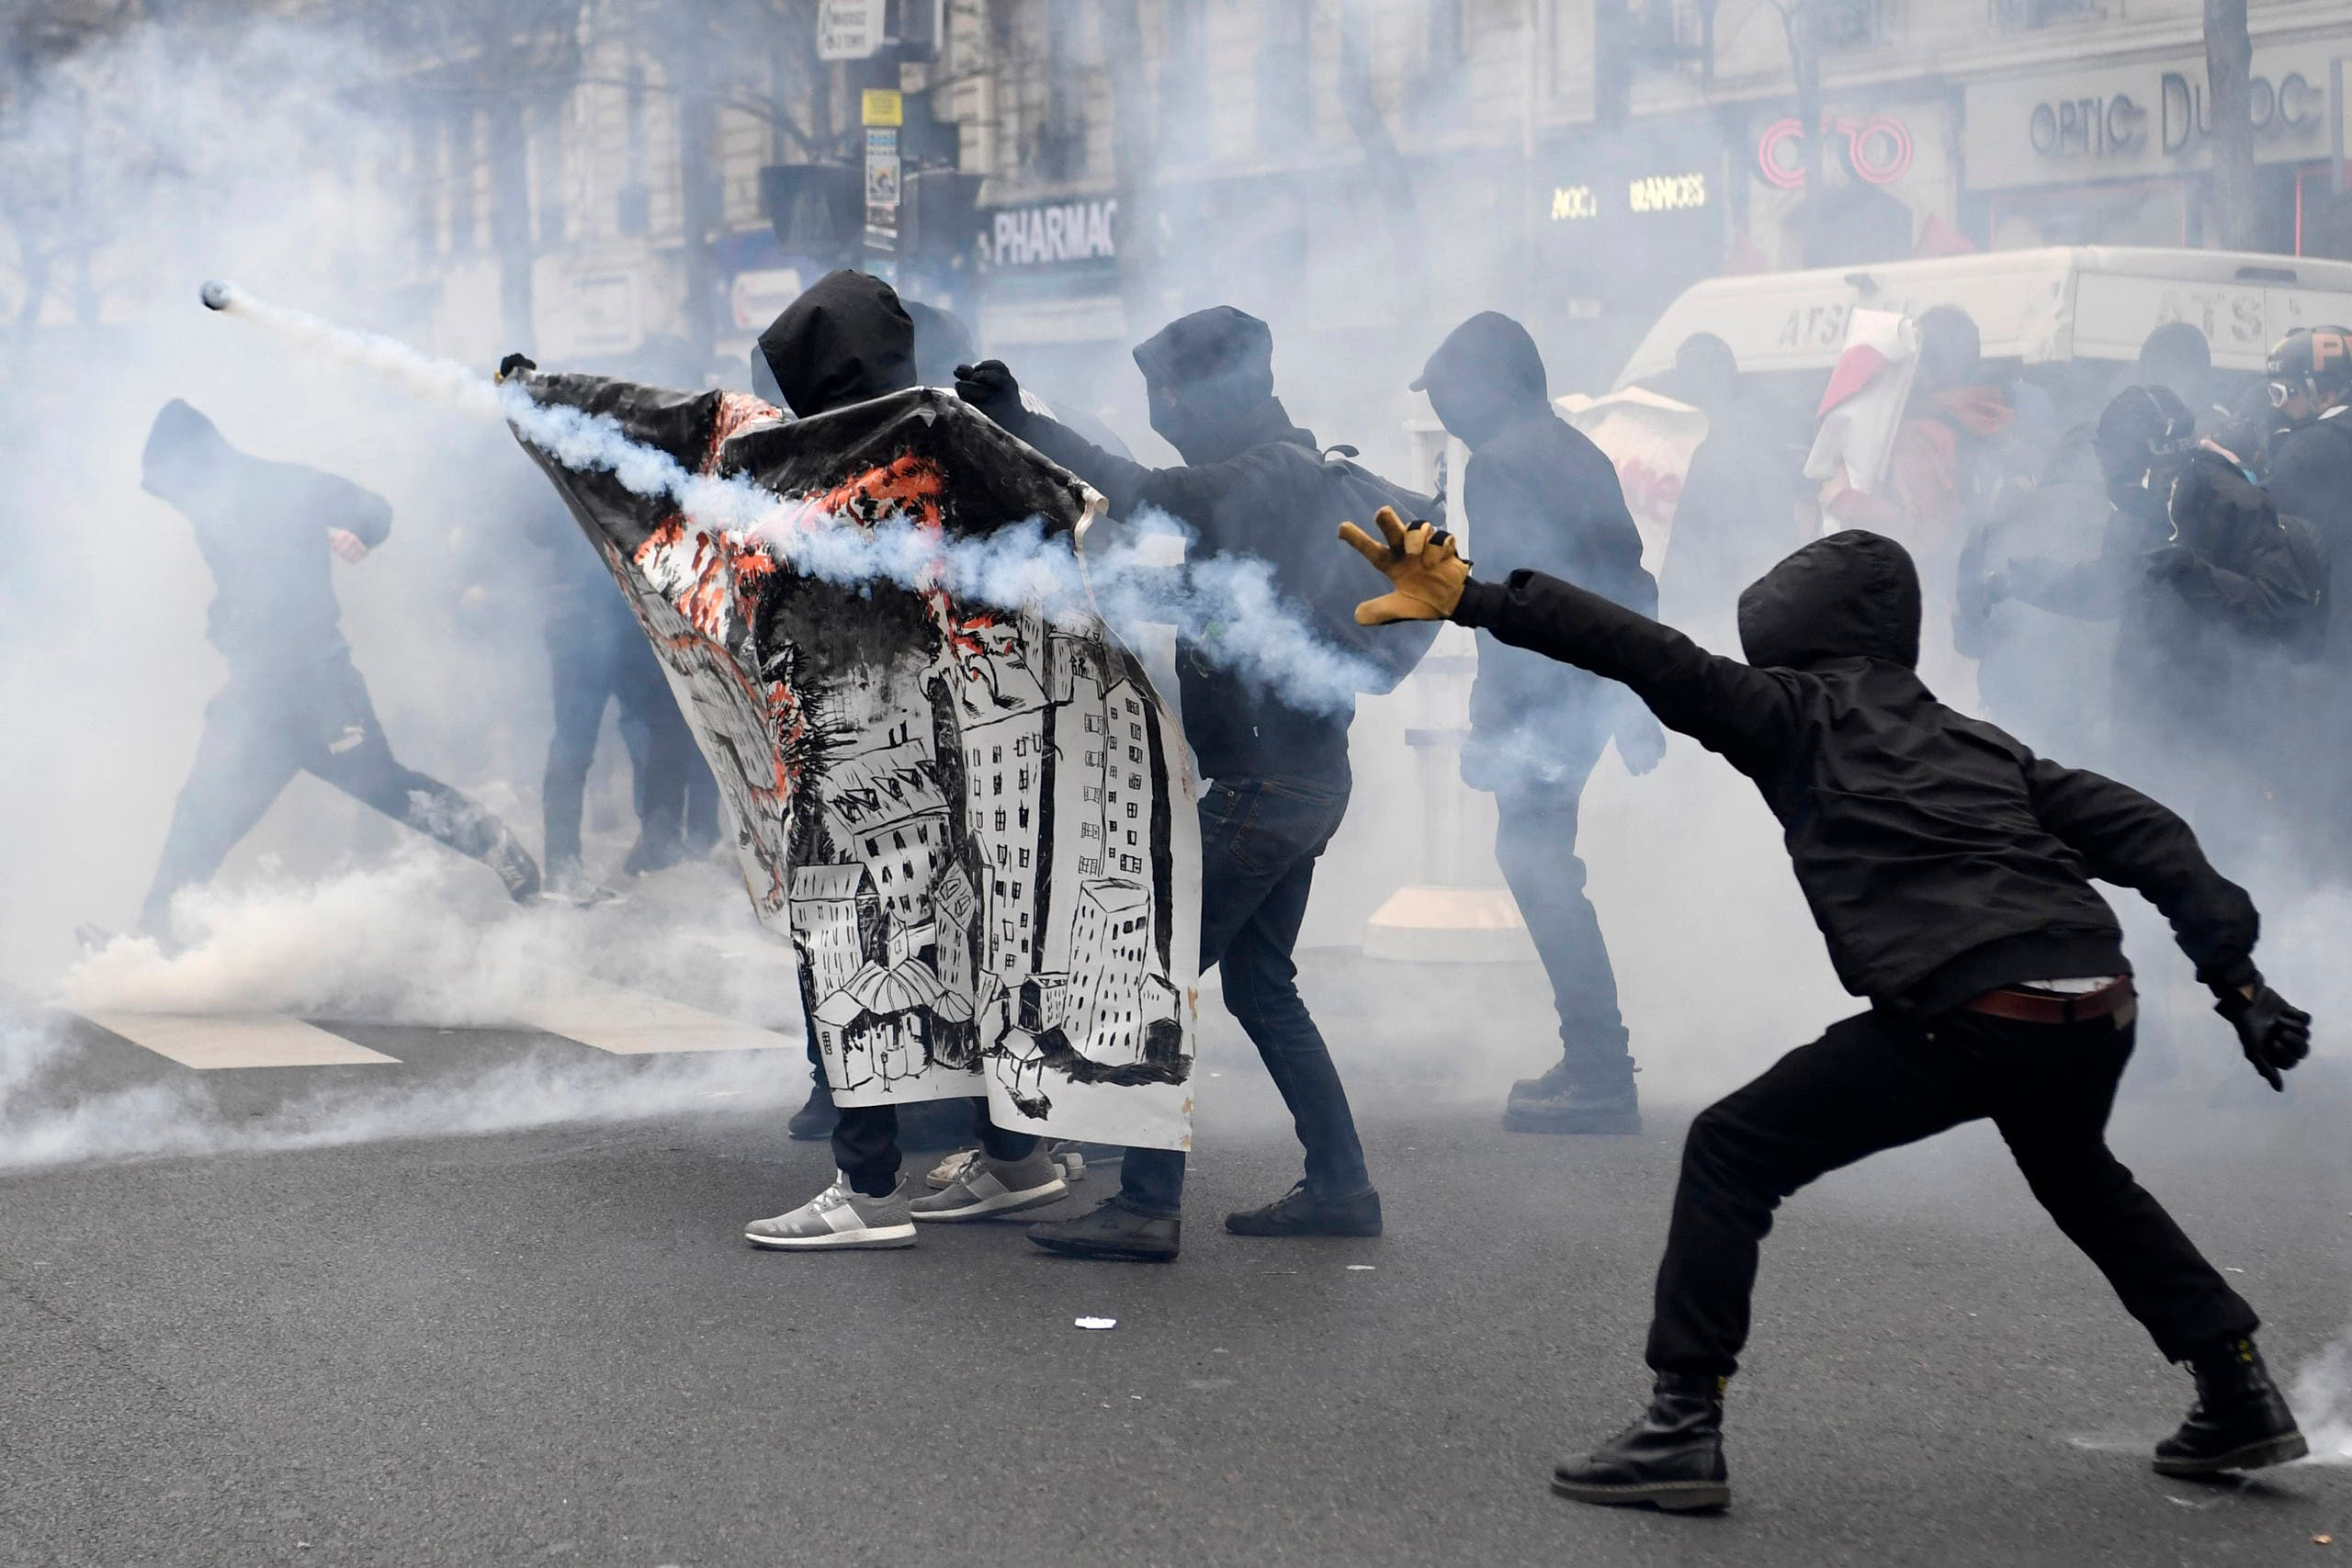 Hooded participants throw back tear gas canisters as they clash with police within a demonstration called by the families of the victims of alleged police brutality, AFP